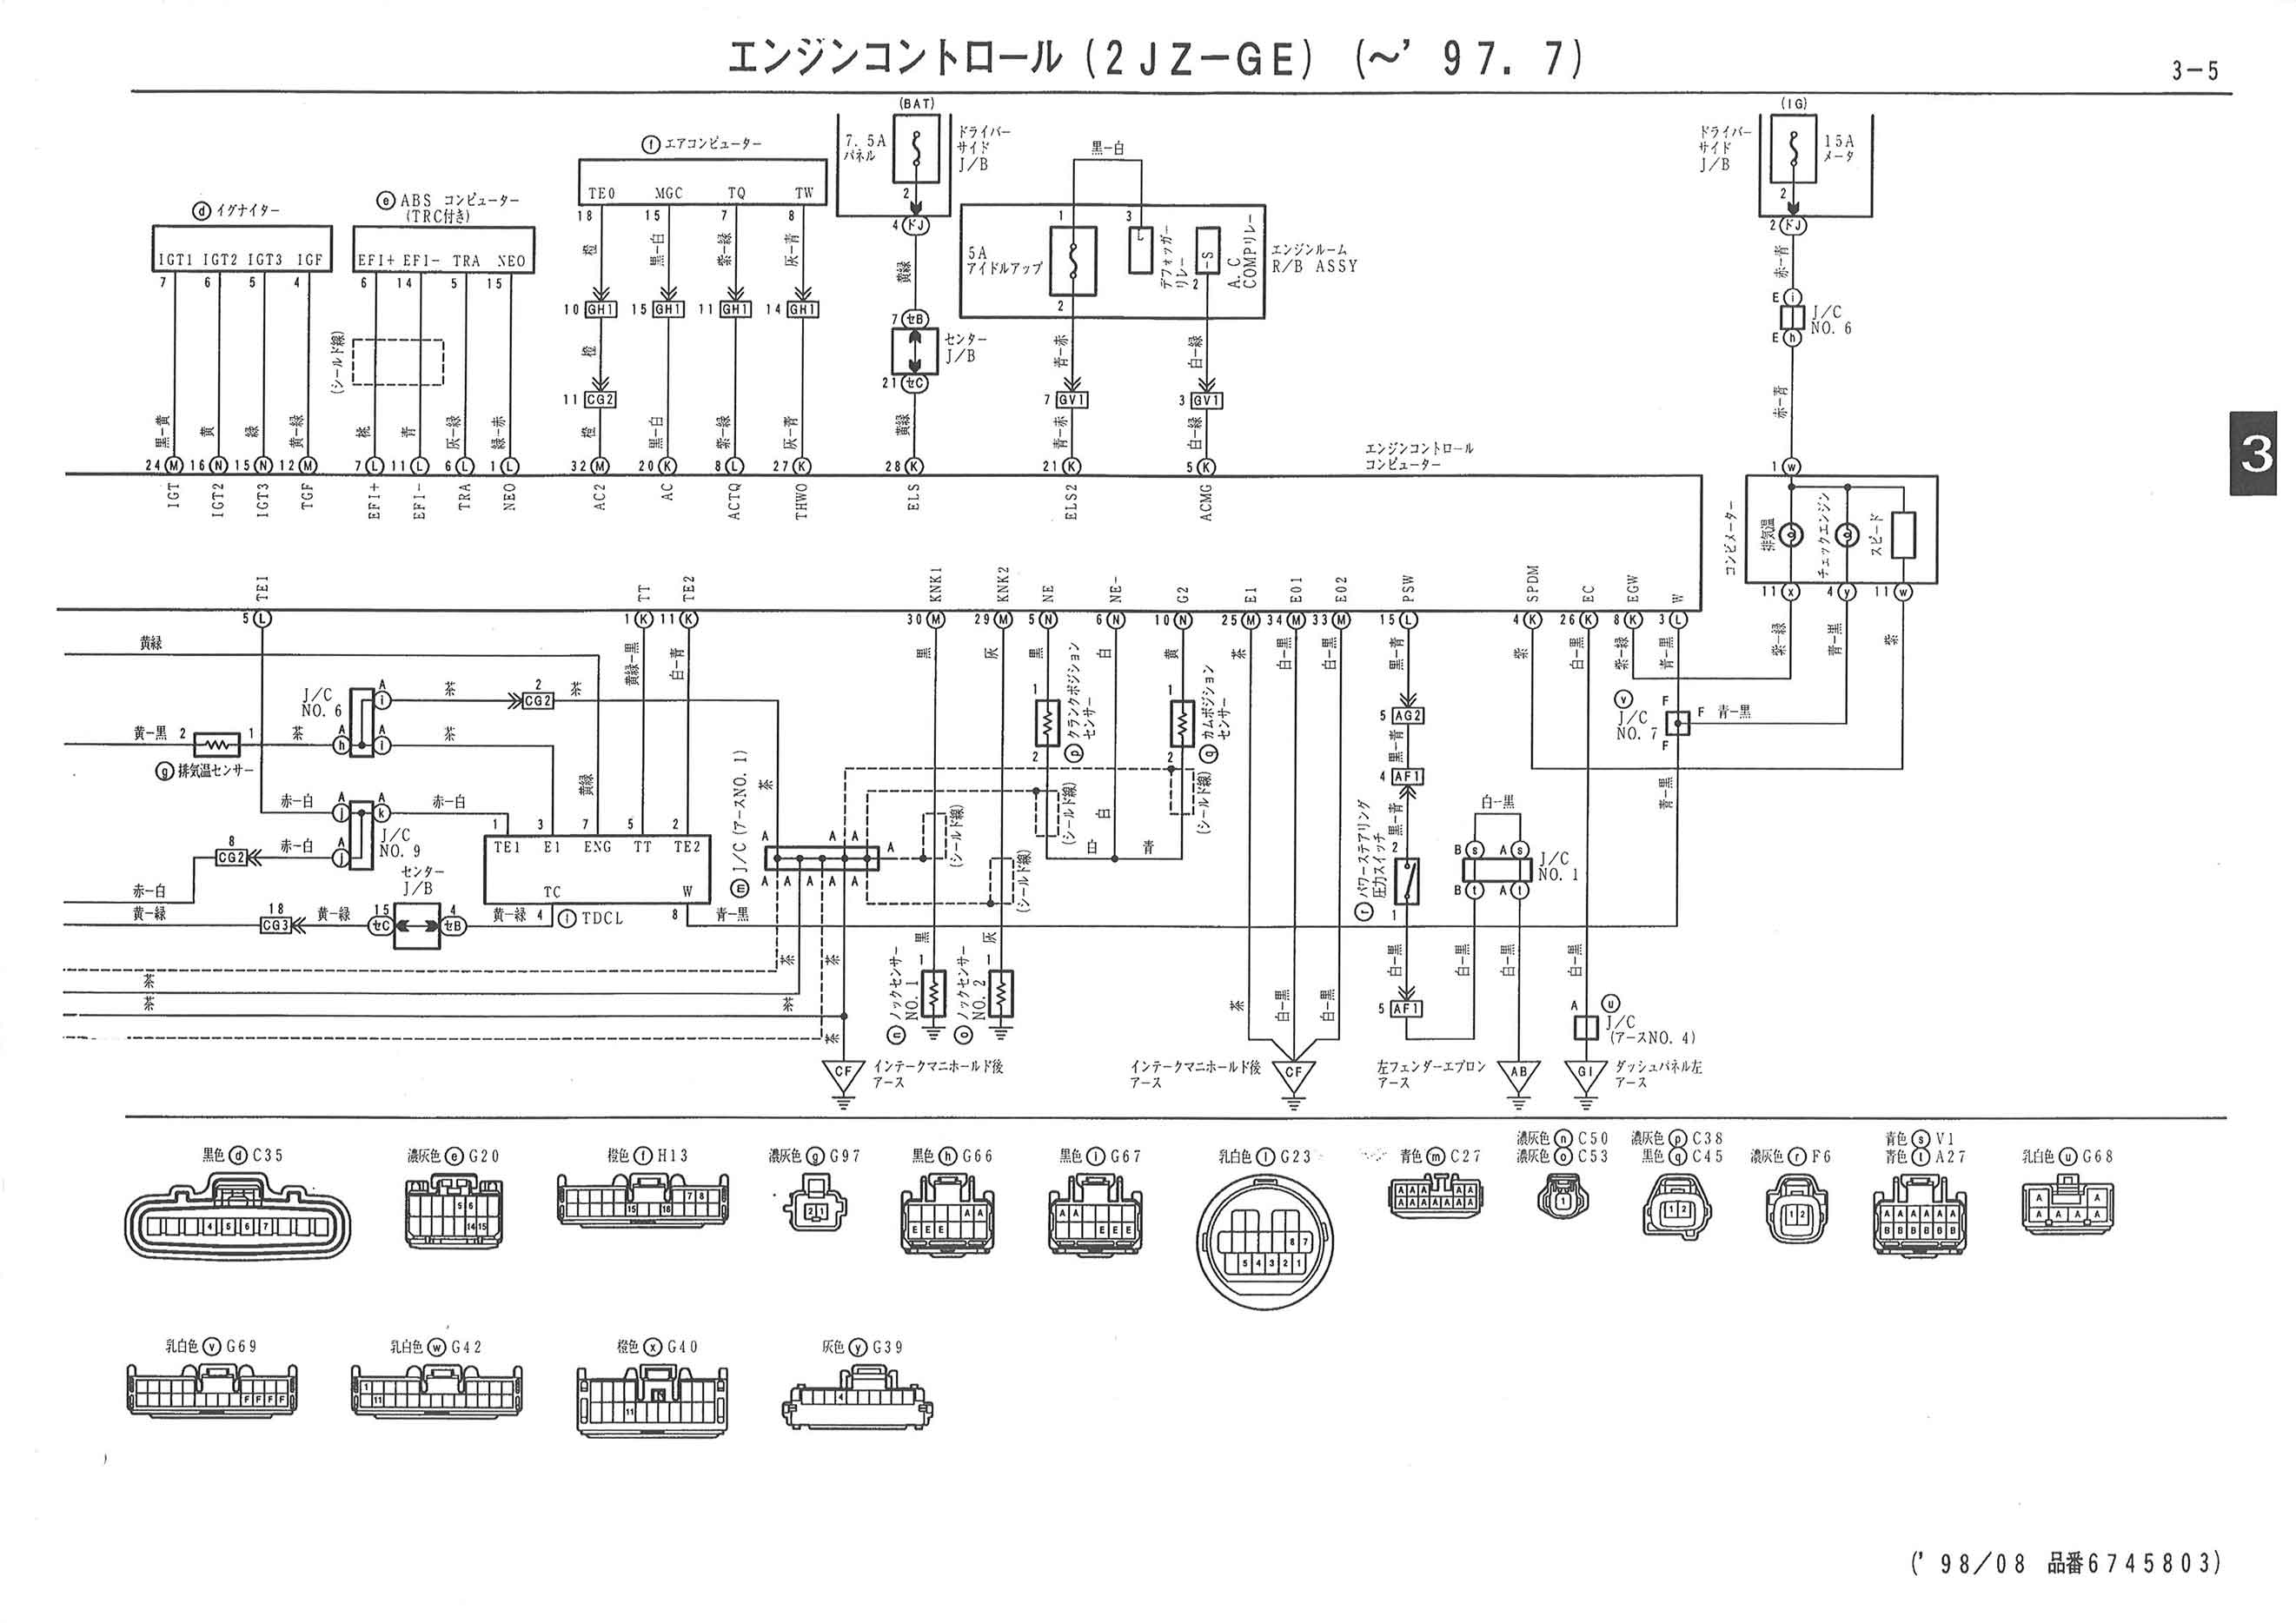 2jz Ge Vvt I 4 Ecu Wiring Diagram